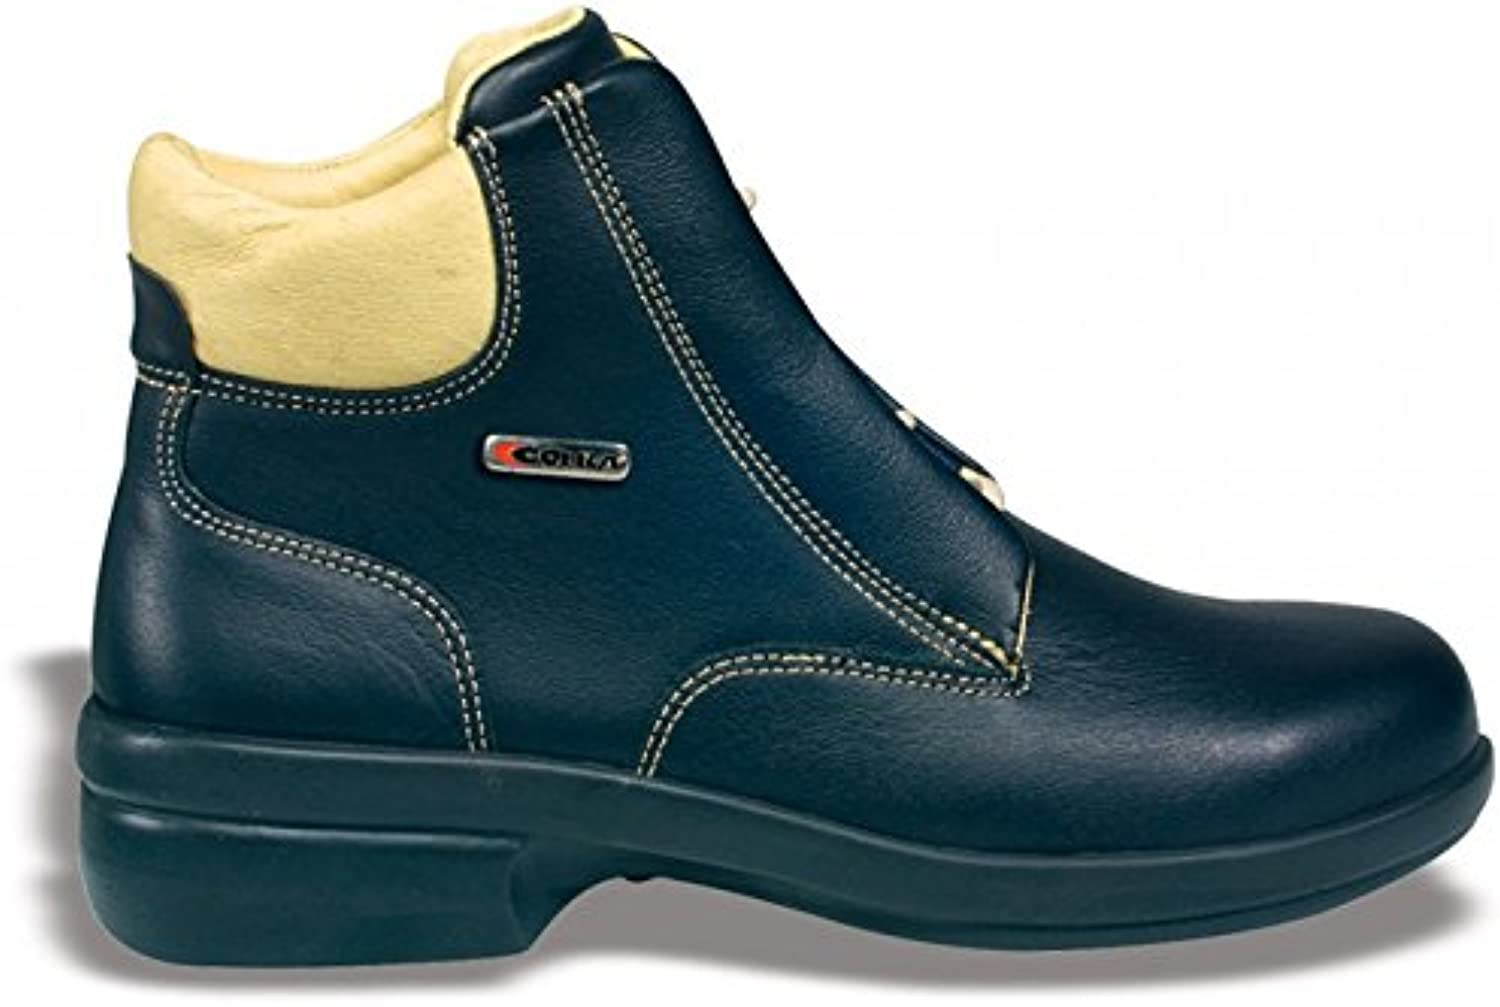 Cofra 84200-004.D40 Size 40 S2 SRC  Alexia  Safety shoes - bluee